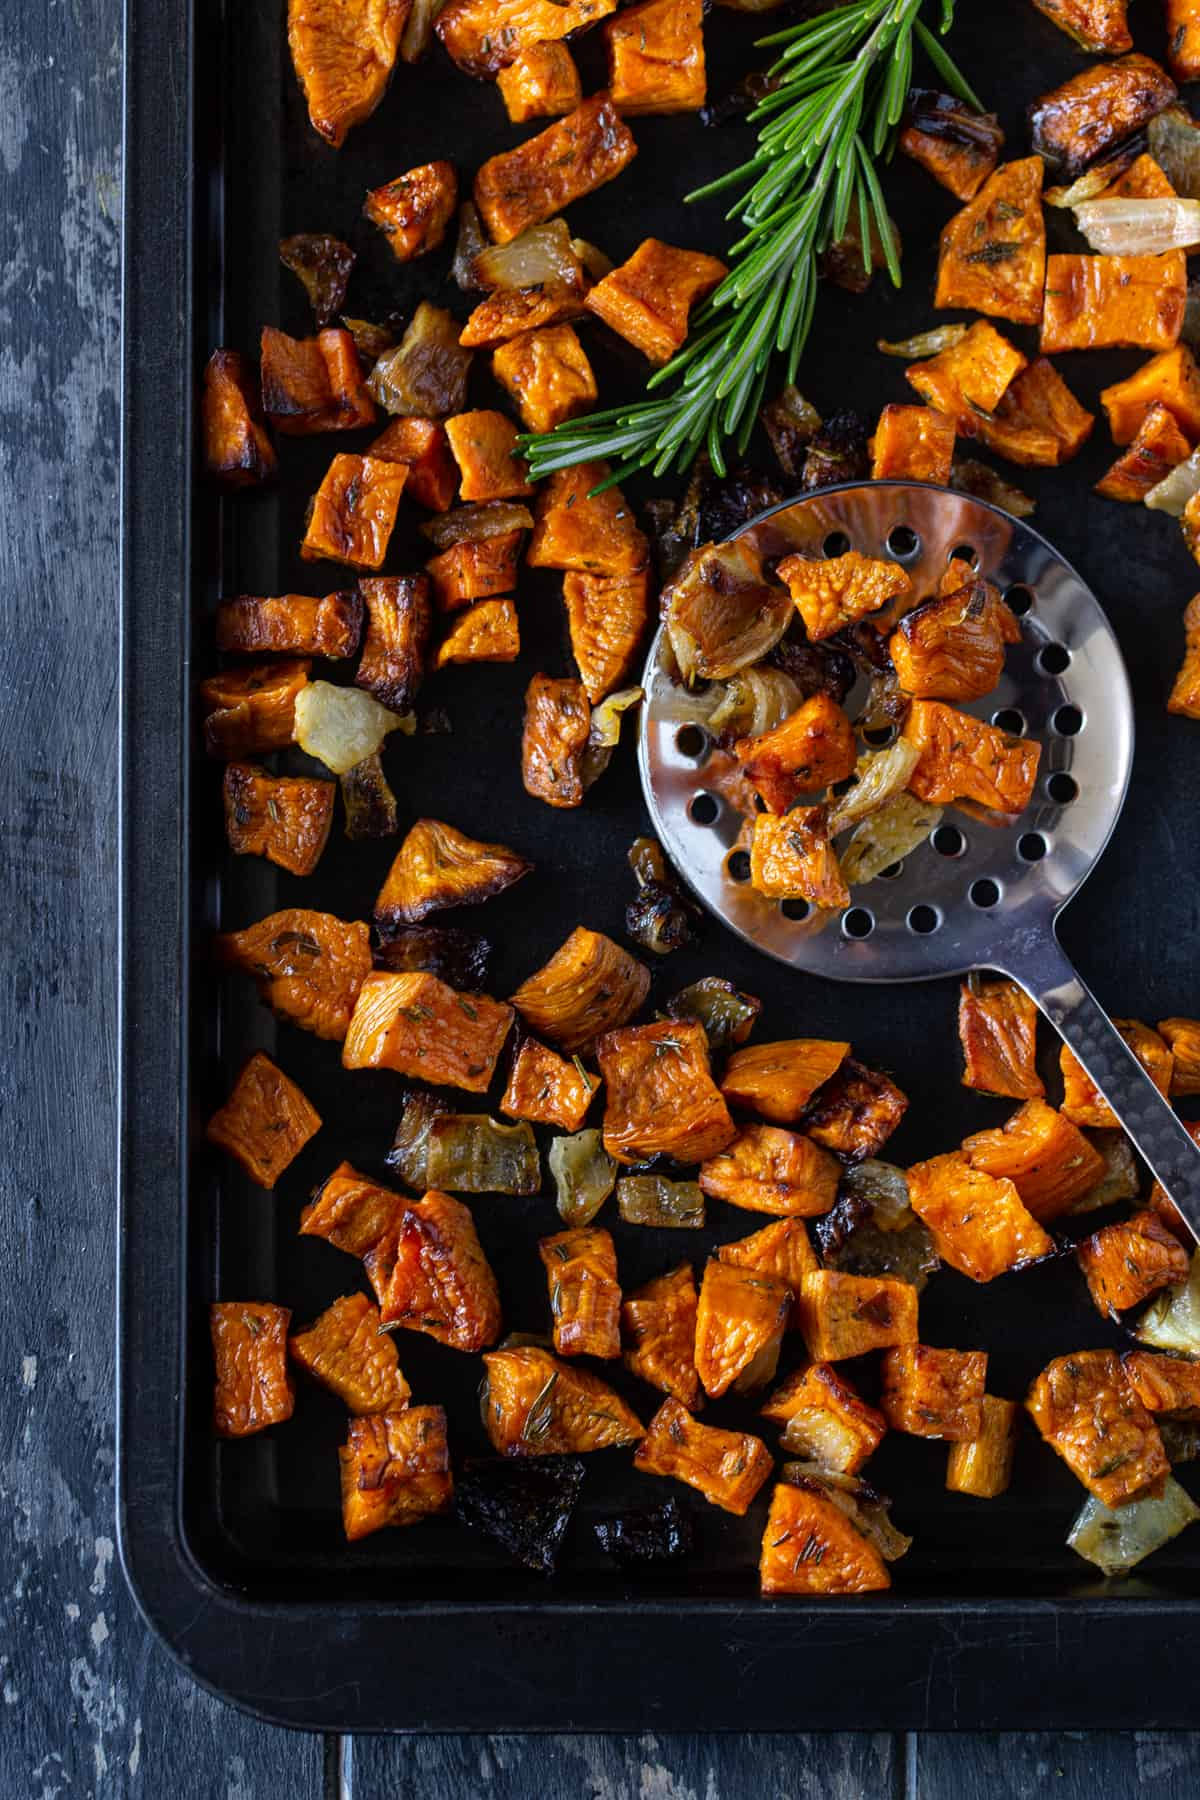 Dark sheet pan filled with roasted sweet potatoes and onions. Silver spoon lifting potatoes from pan.